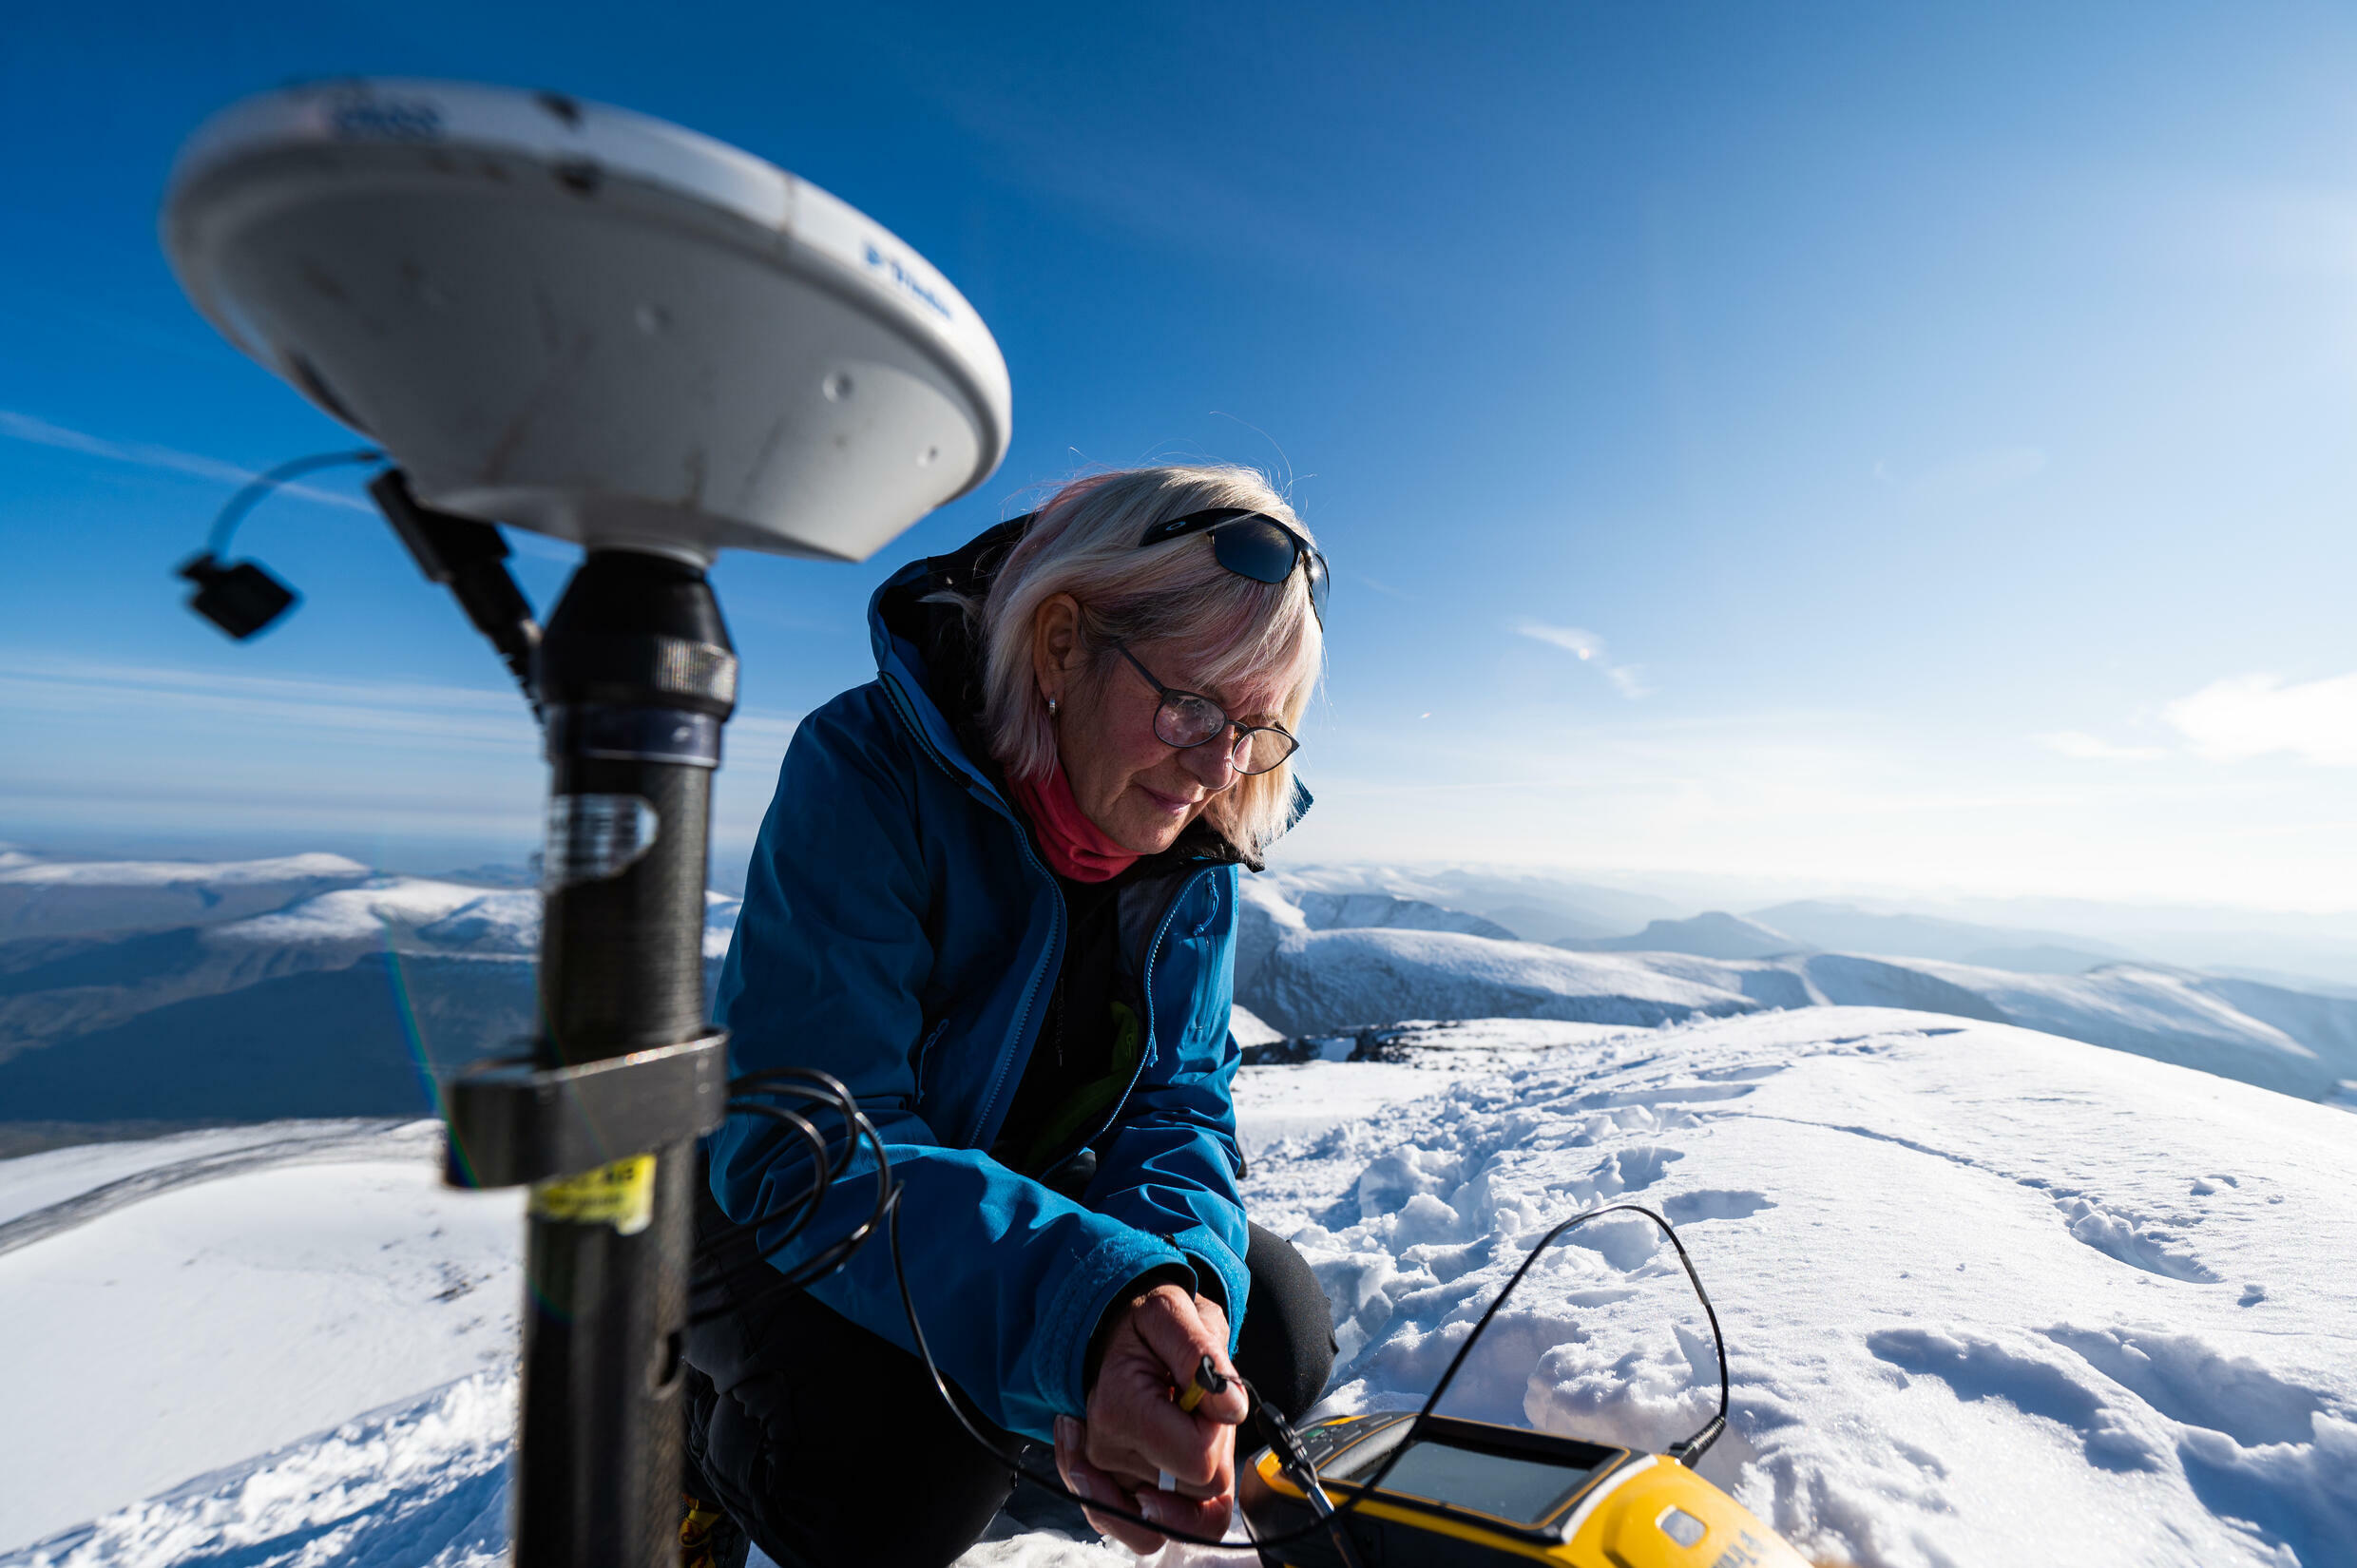 Glacial researcher Ninis Rosqvist, 61, sees the impact of a warming climate first-hand on the south glacial peak of the Kebnekaise massif